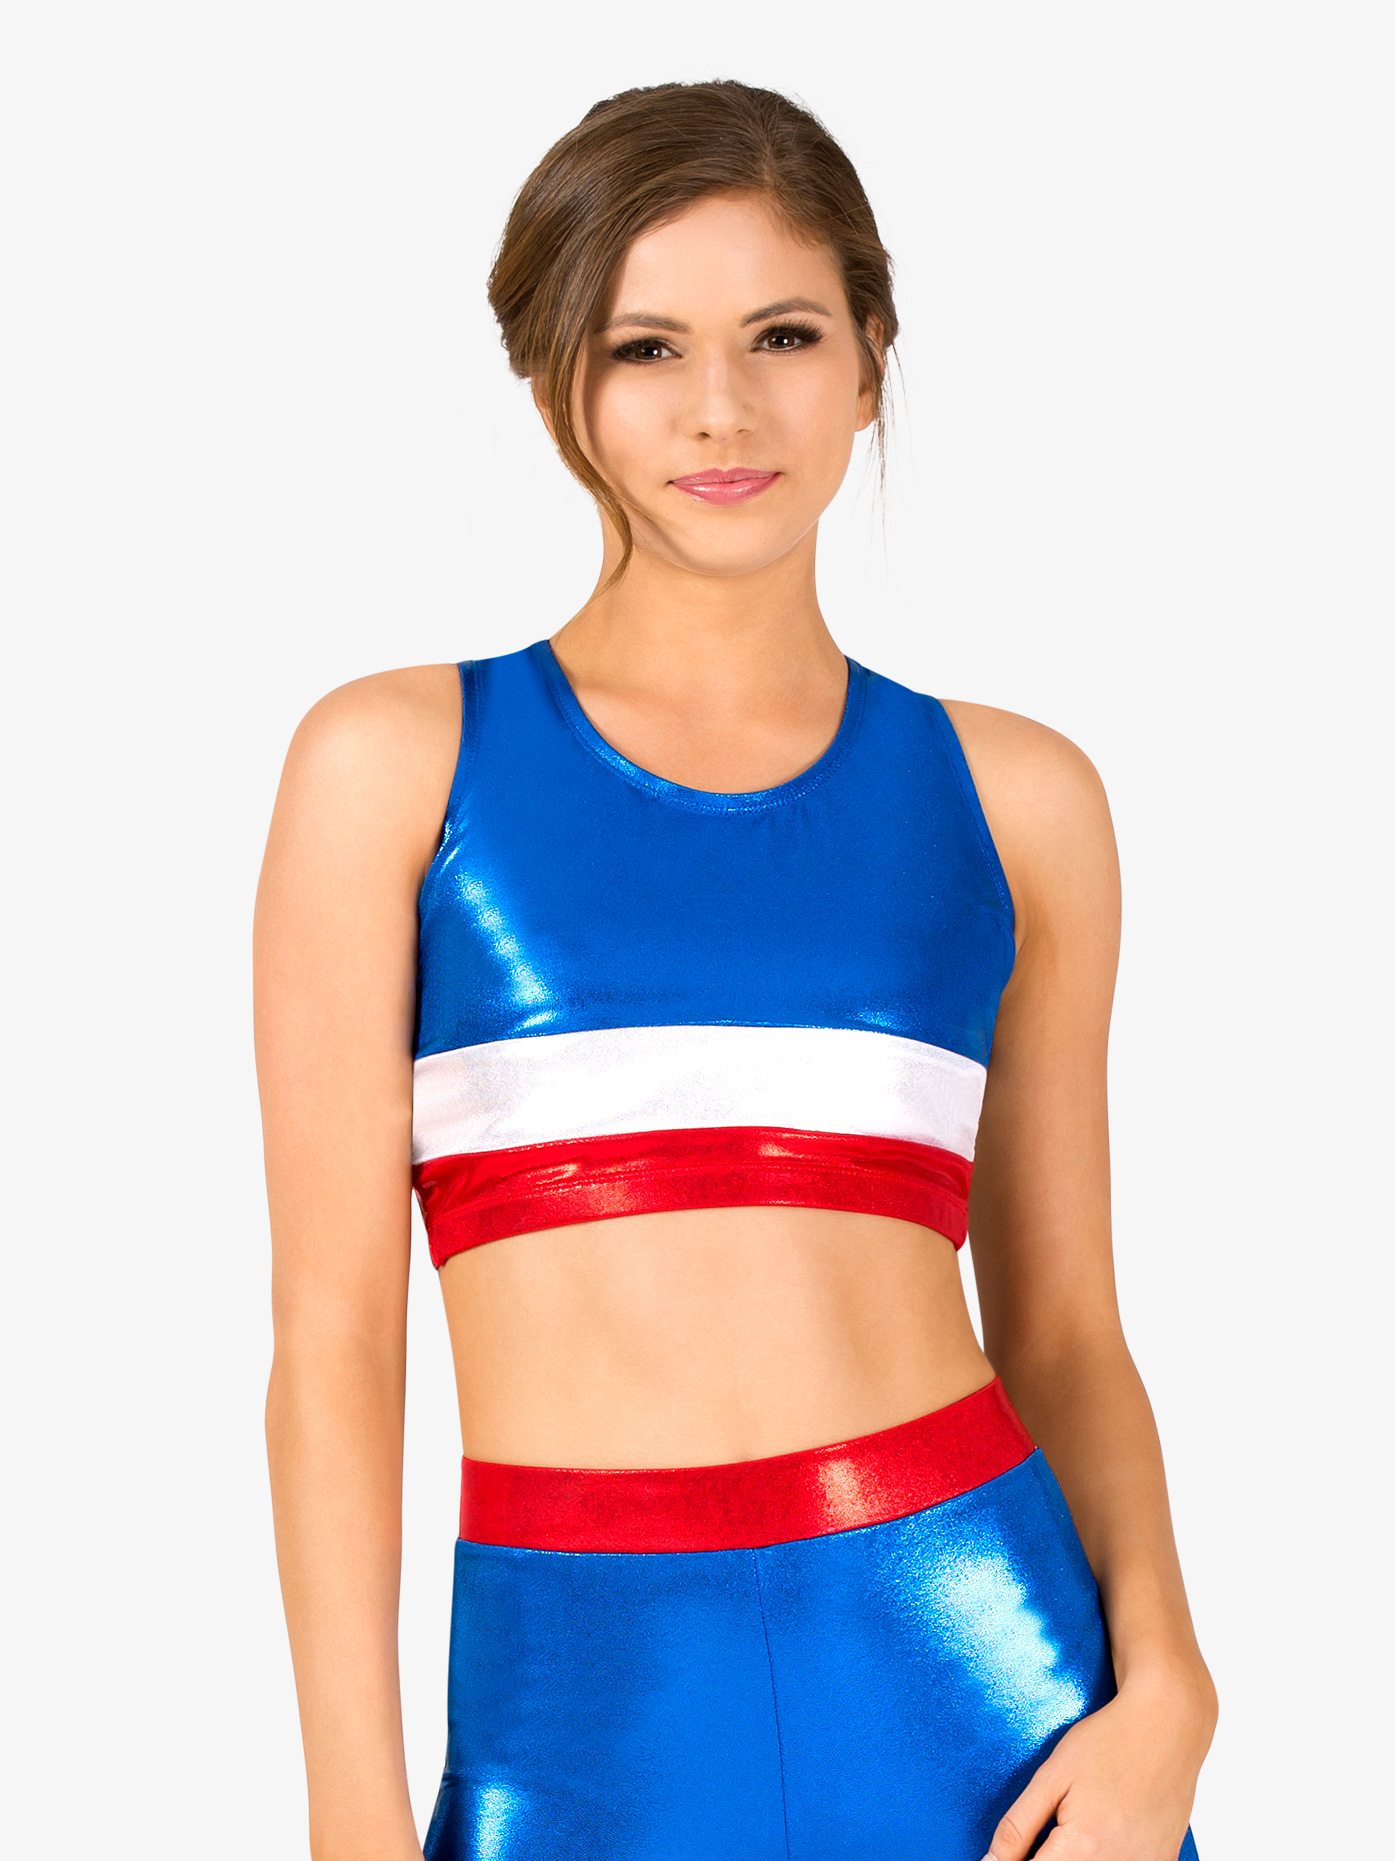 Perfect Balance Womens Gymnastics Patriotic Print Tank Bra Top G687